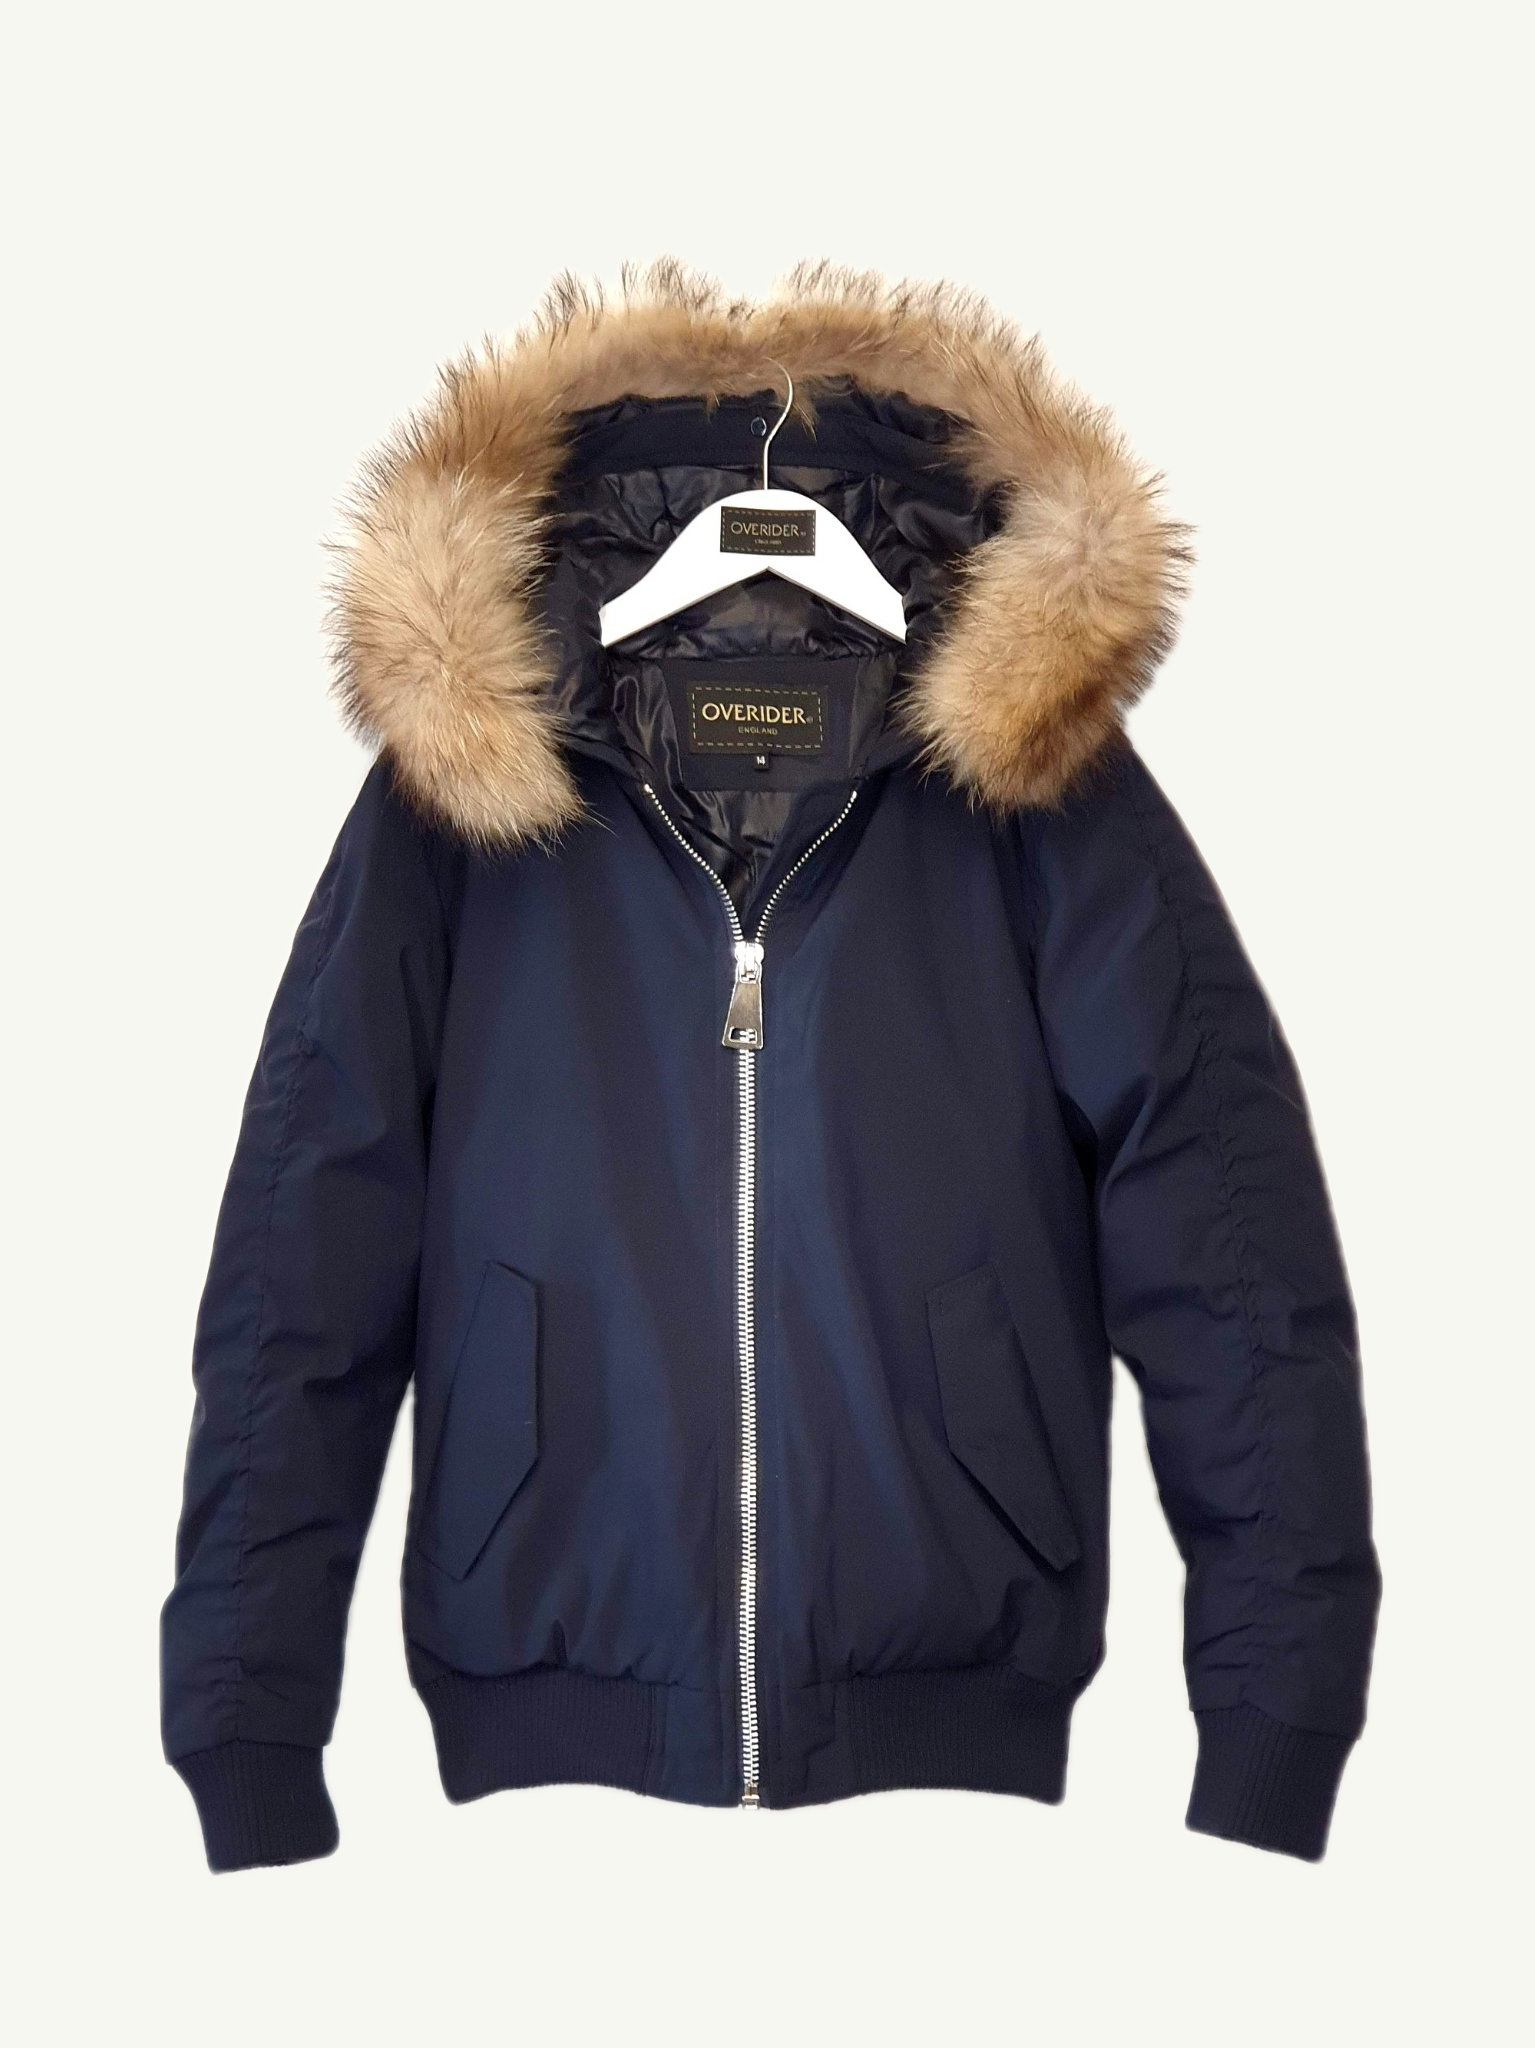 OCEANE - Girls Hooded Winter Jacket